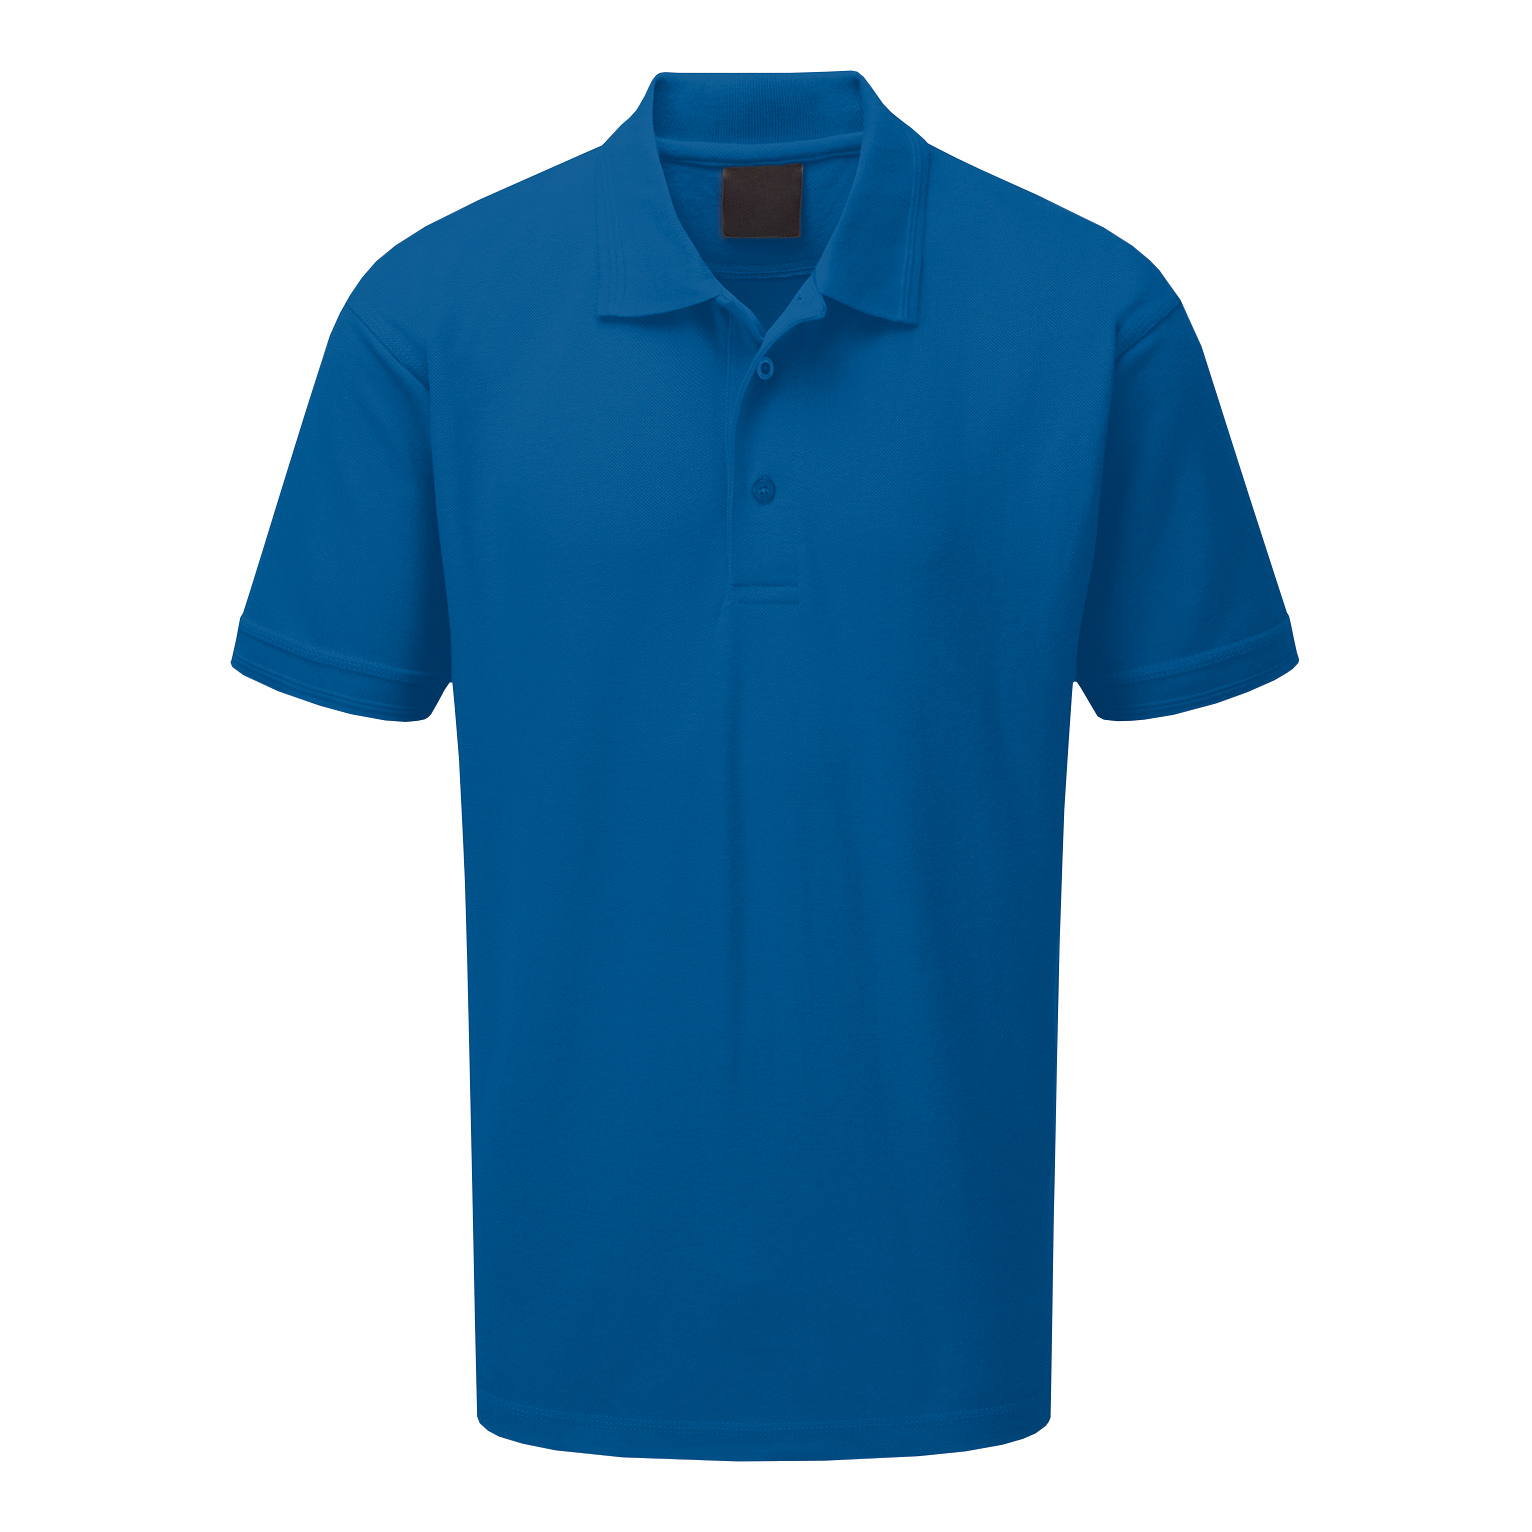 Business Polo Premium Triple Stitched Size 2XL Royal Blue